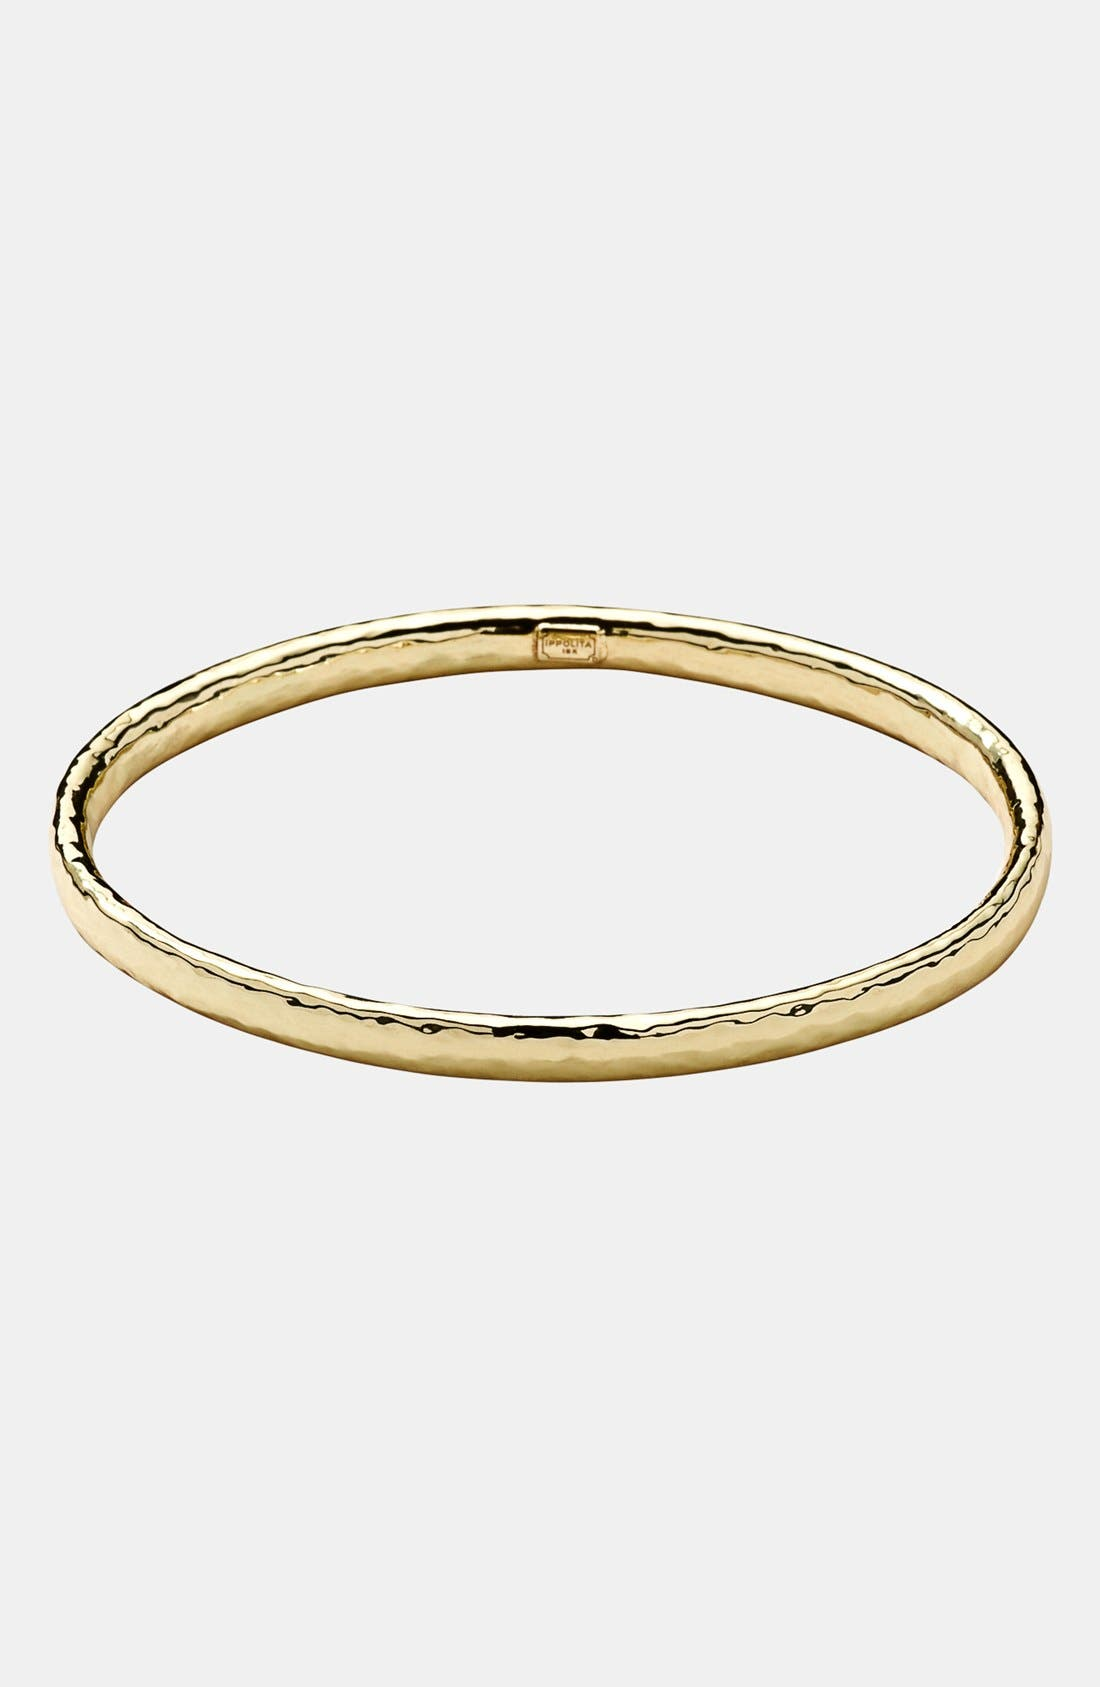 Alternate Image 1 Selected - Ippolita 'Glamazon' 18k Gold Bangle